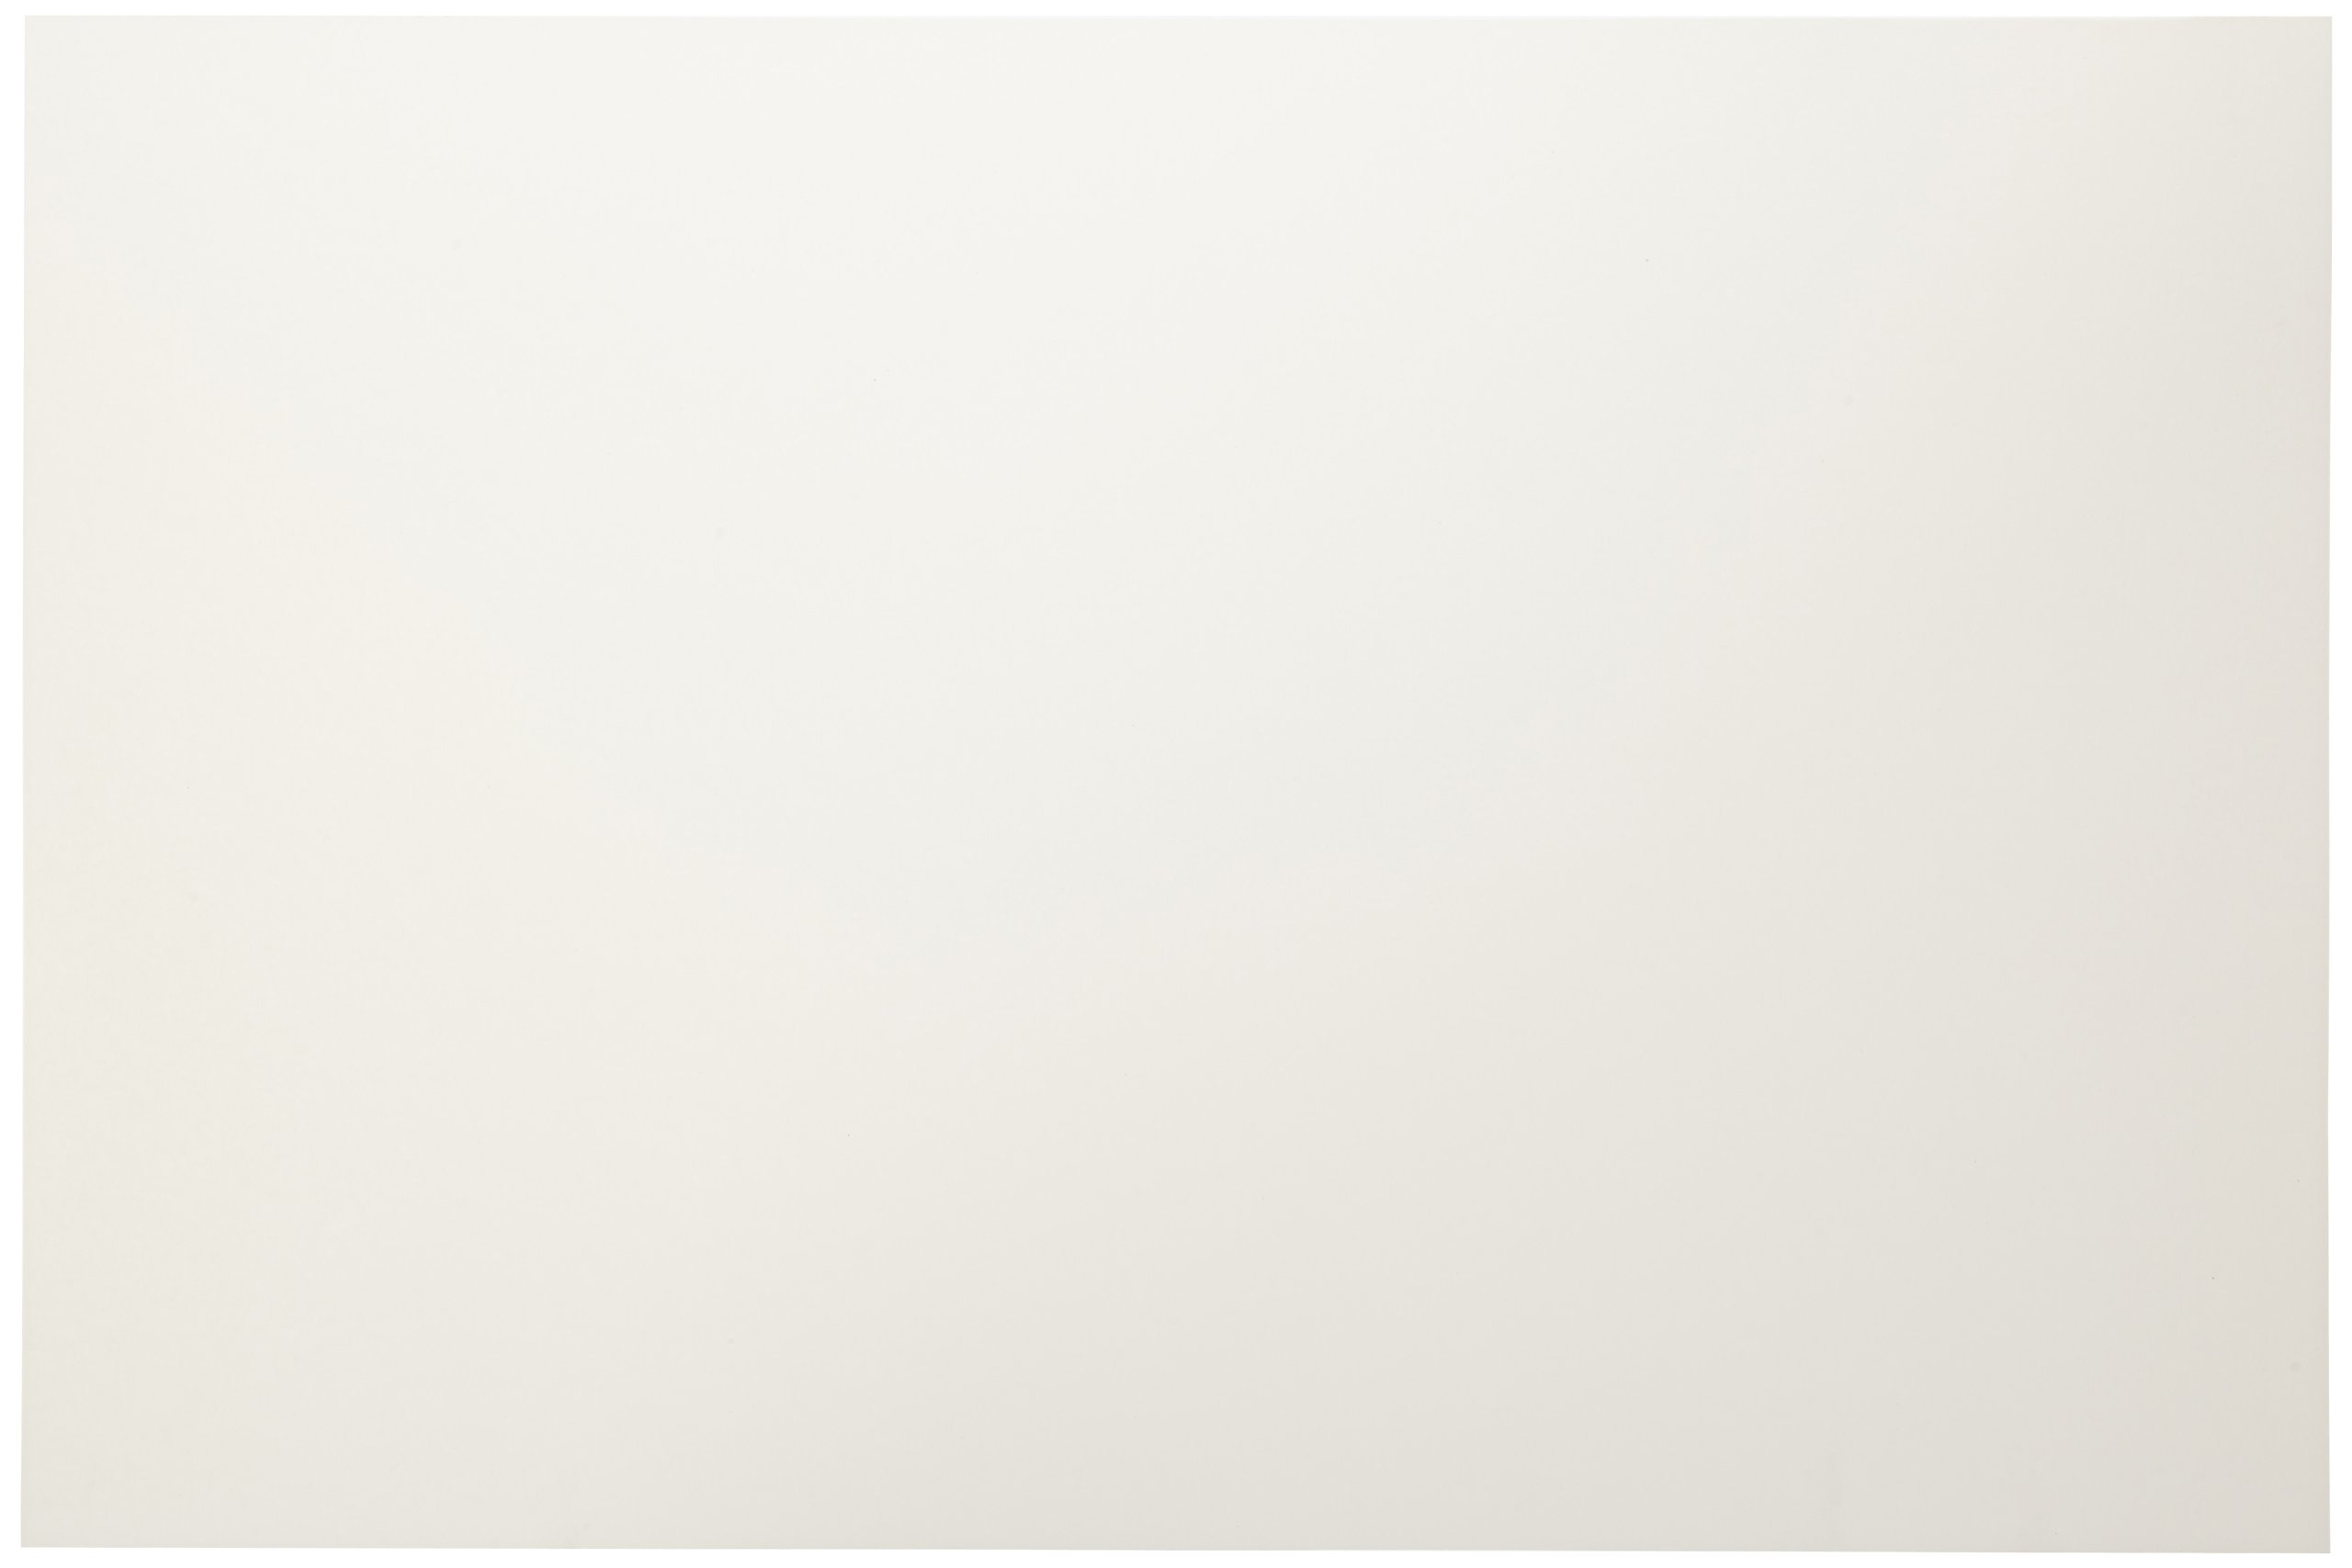 Sax Watercolor Paper, 24 x 36 Inches, 90 lb, Natural White, 100 Sheets